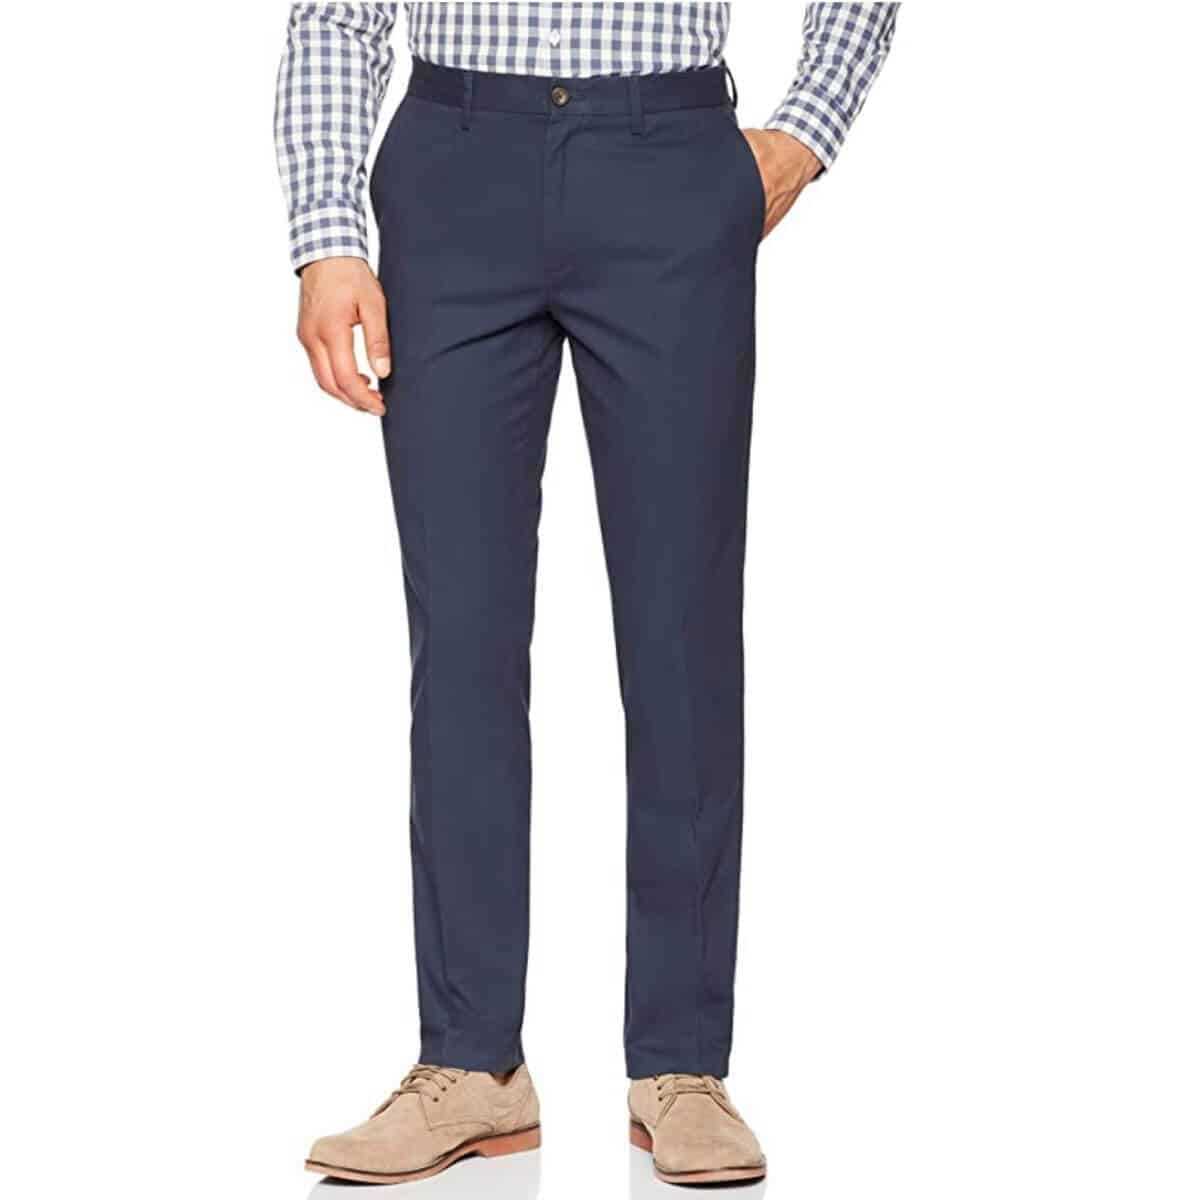 Person wearing a button-up and navy blue chino pants.